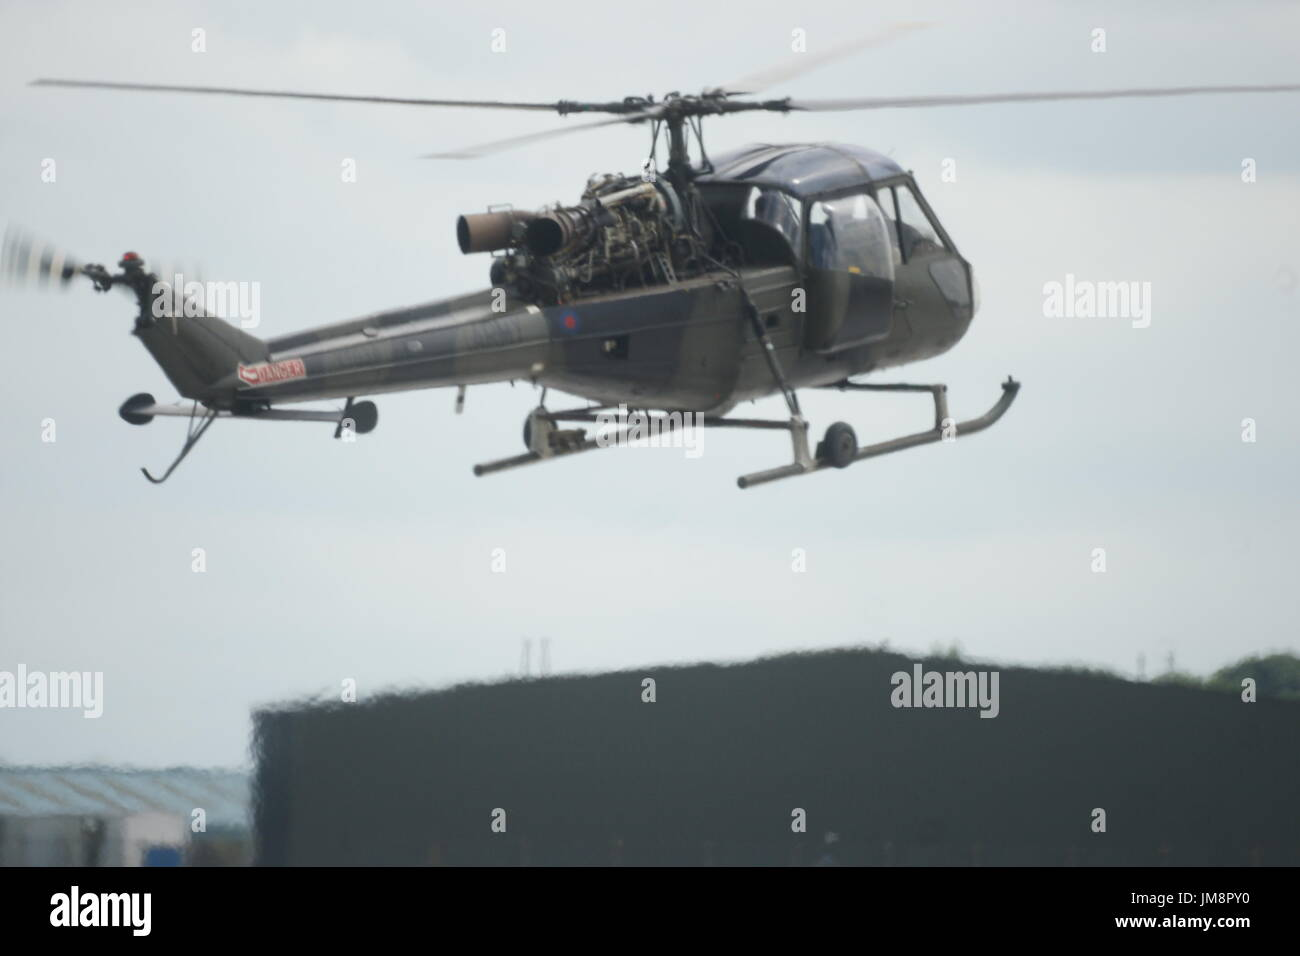 vintage British military helicopter - Stock Image